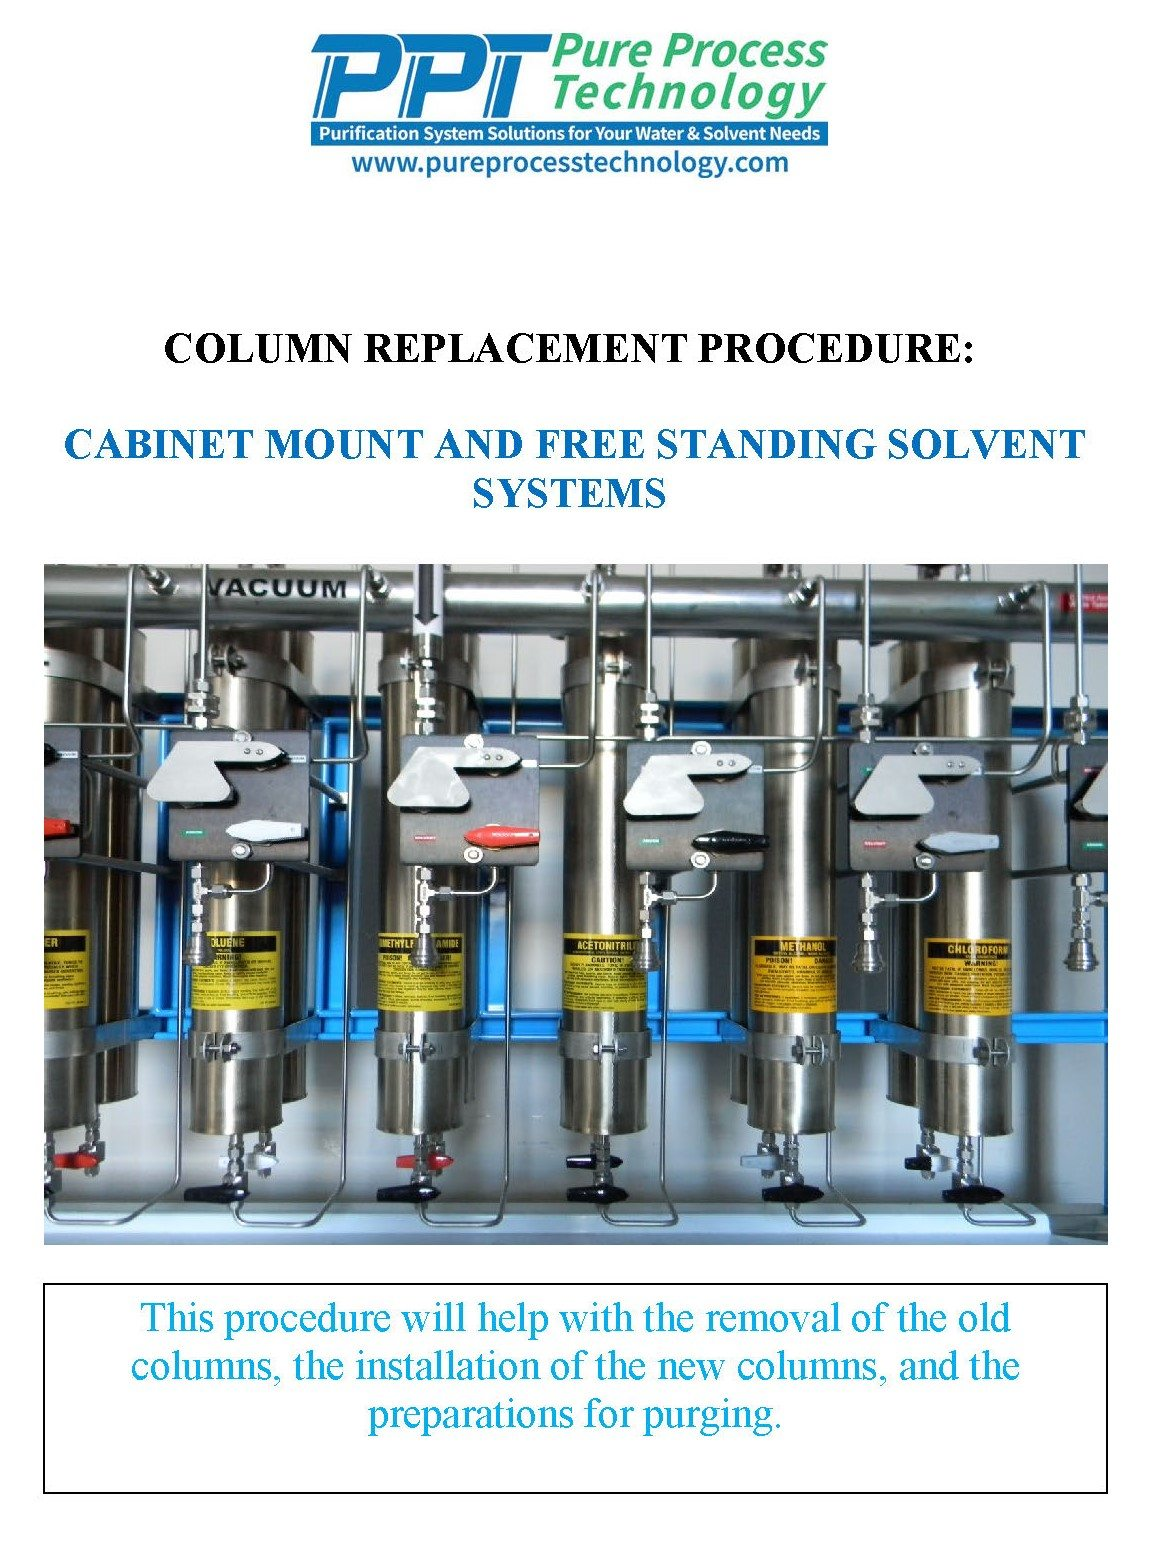 Columns Replacement Procedure